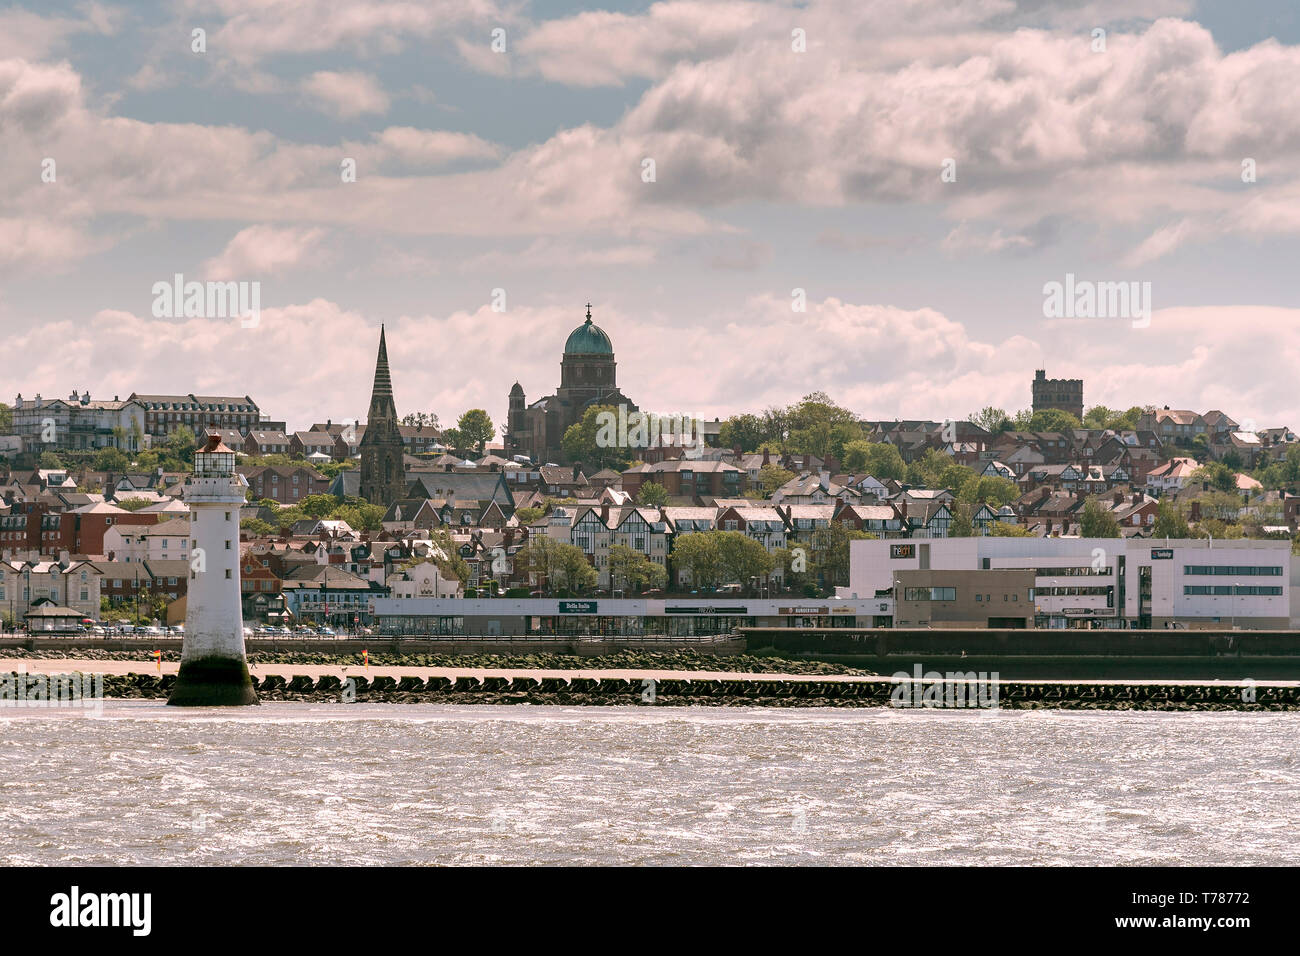 New Brighton, Dome of the Rock church, seaside resort, waterfront. - Stock Image